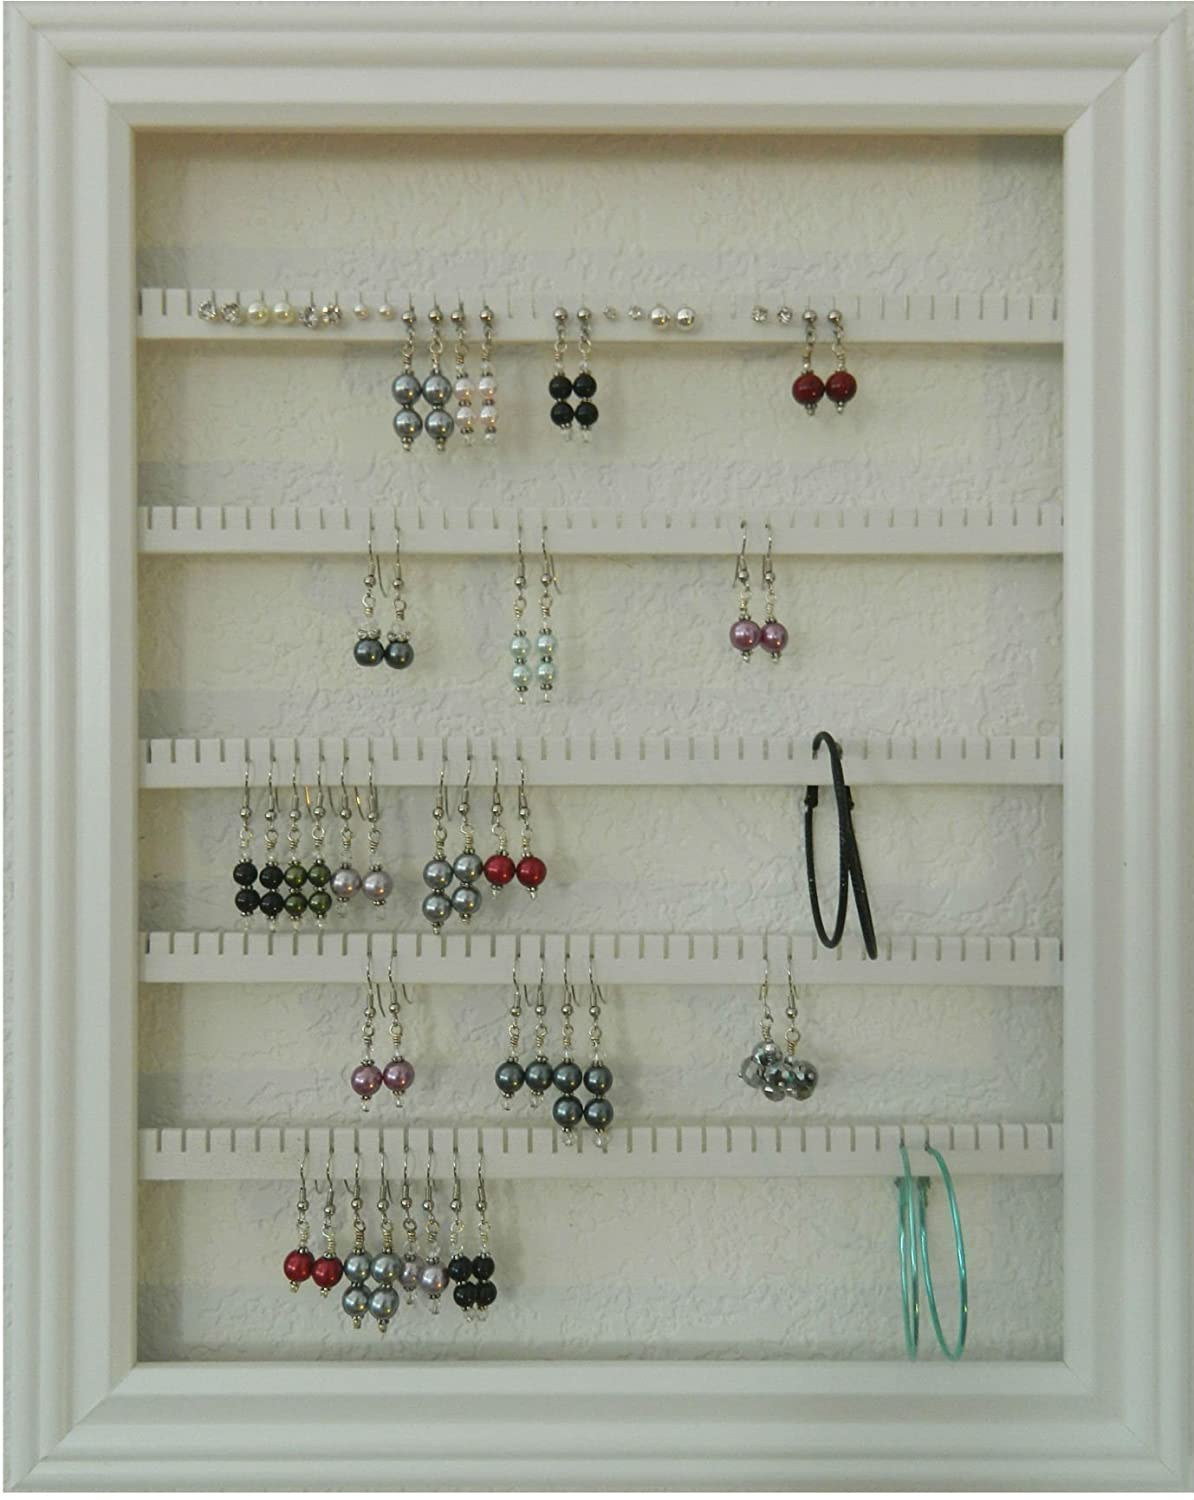 Earring Holder Organizer Storage Jewelry Rack - Wall Mounted Picture Frame Hanging Jewelry Display - Available in 4 Colors - White, Large